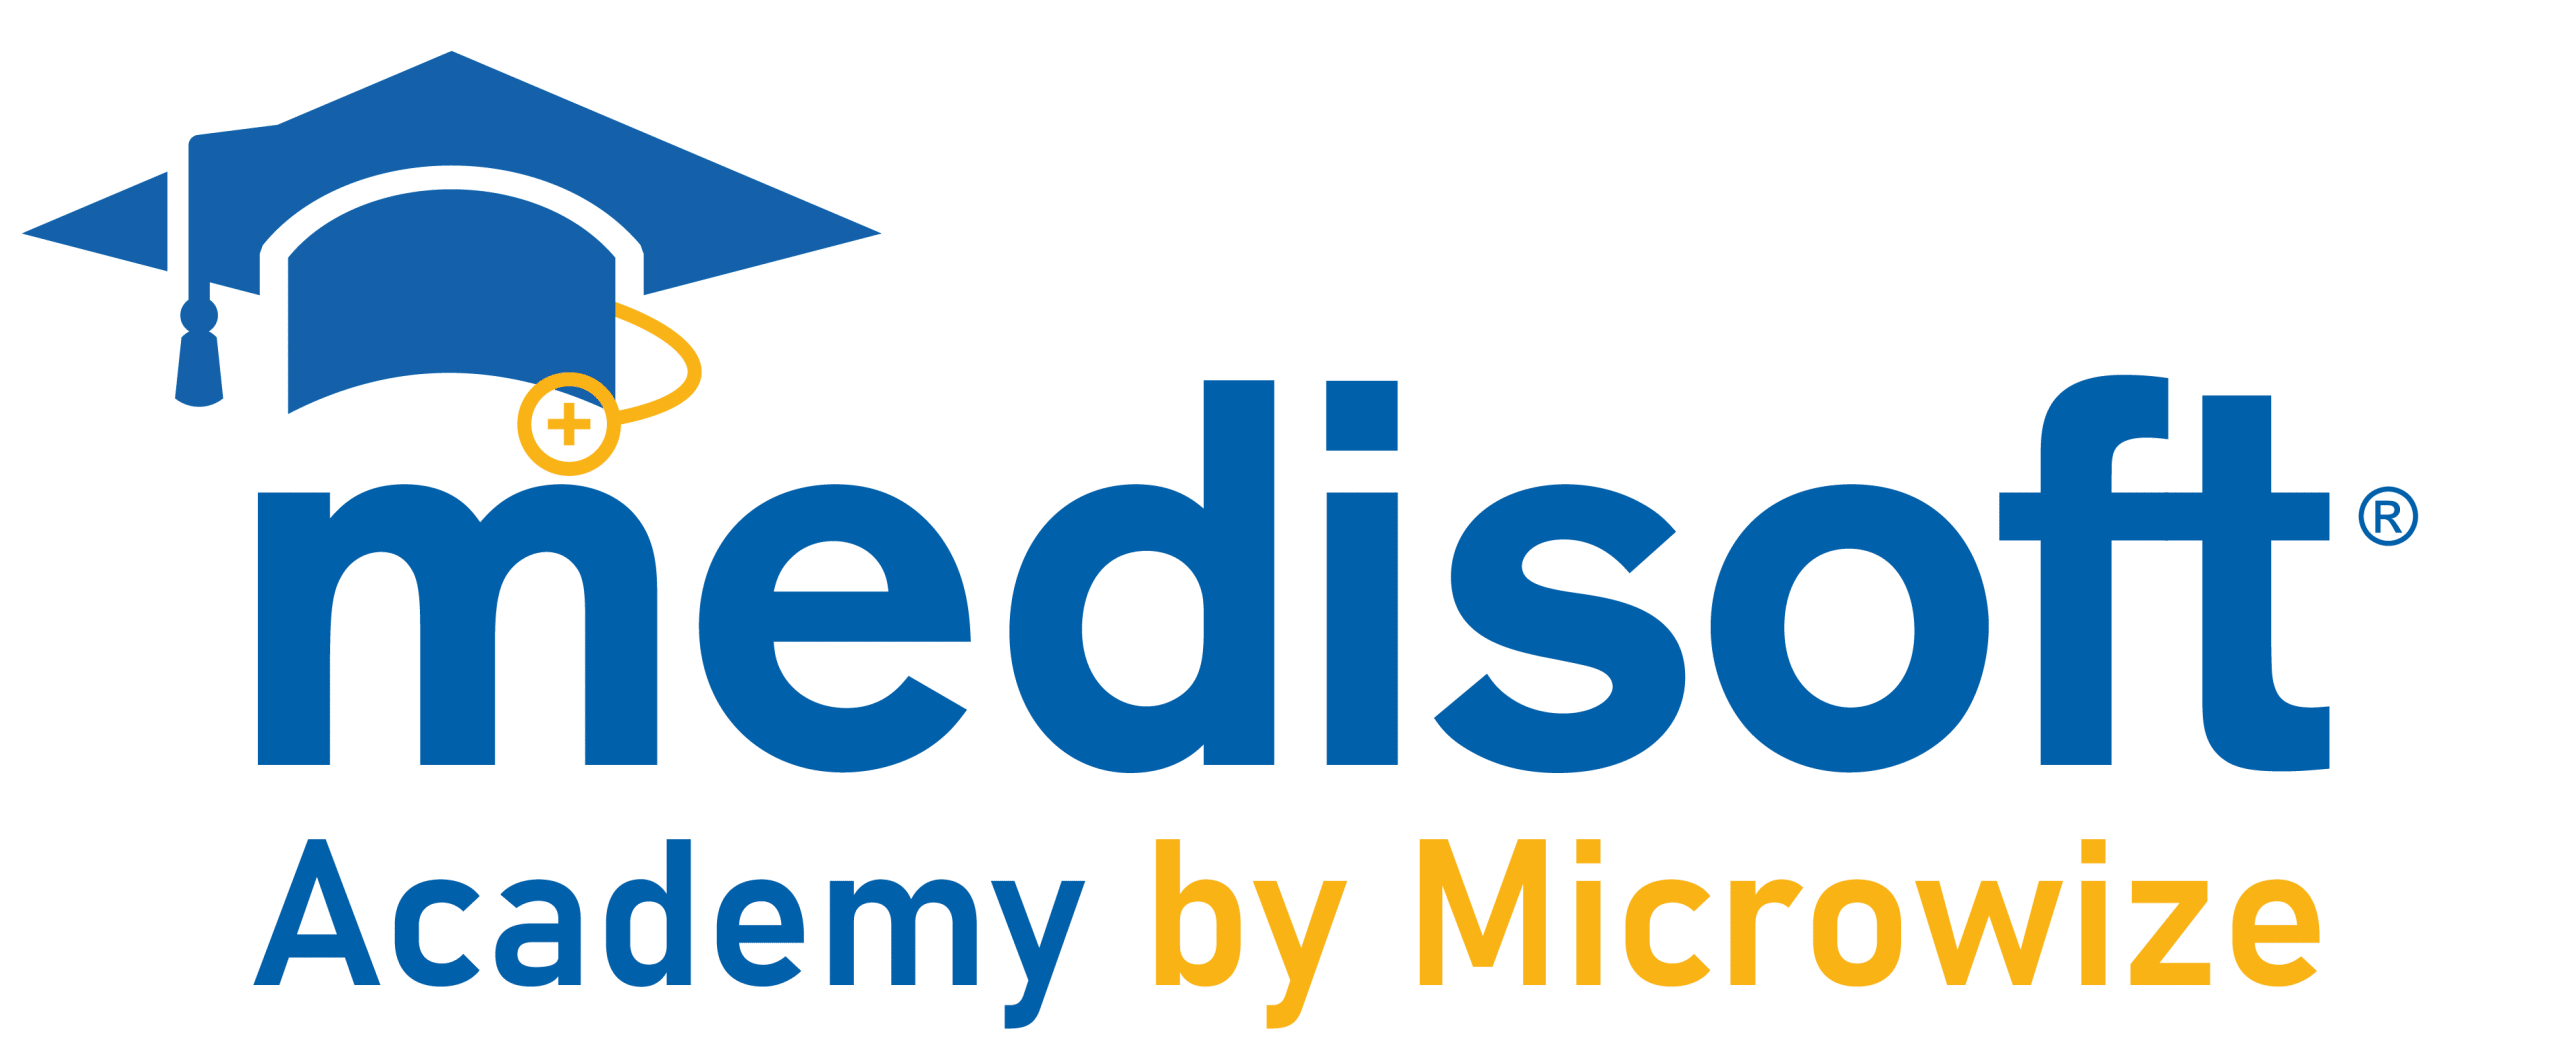 How to use Medisoft - Learn Medisoft Medical Billing